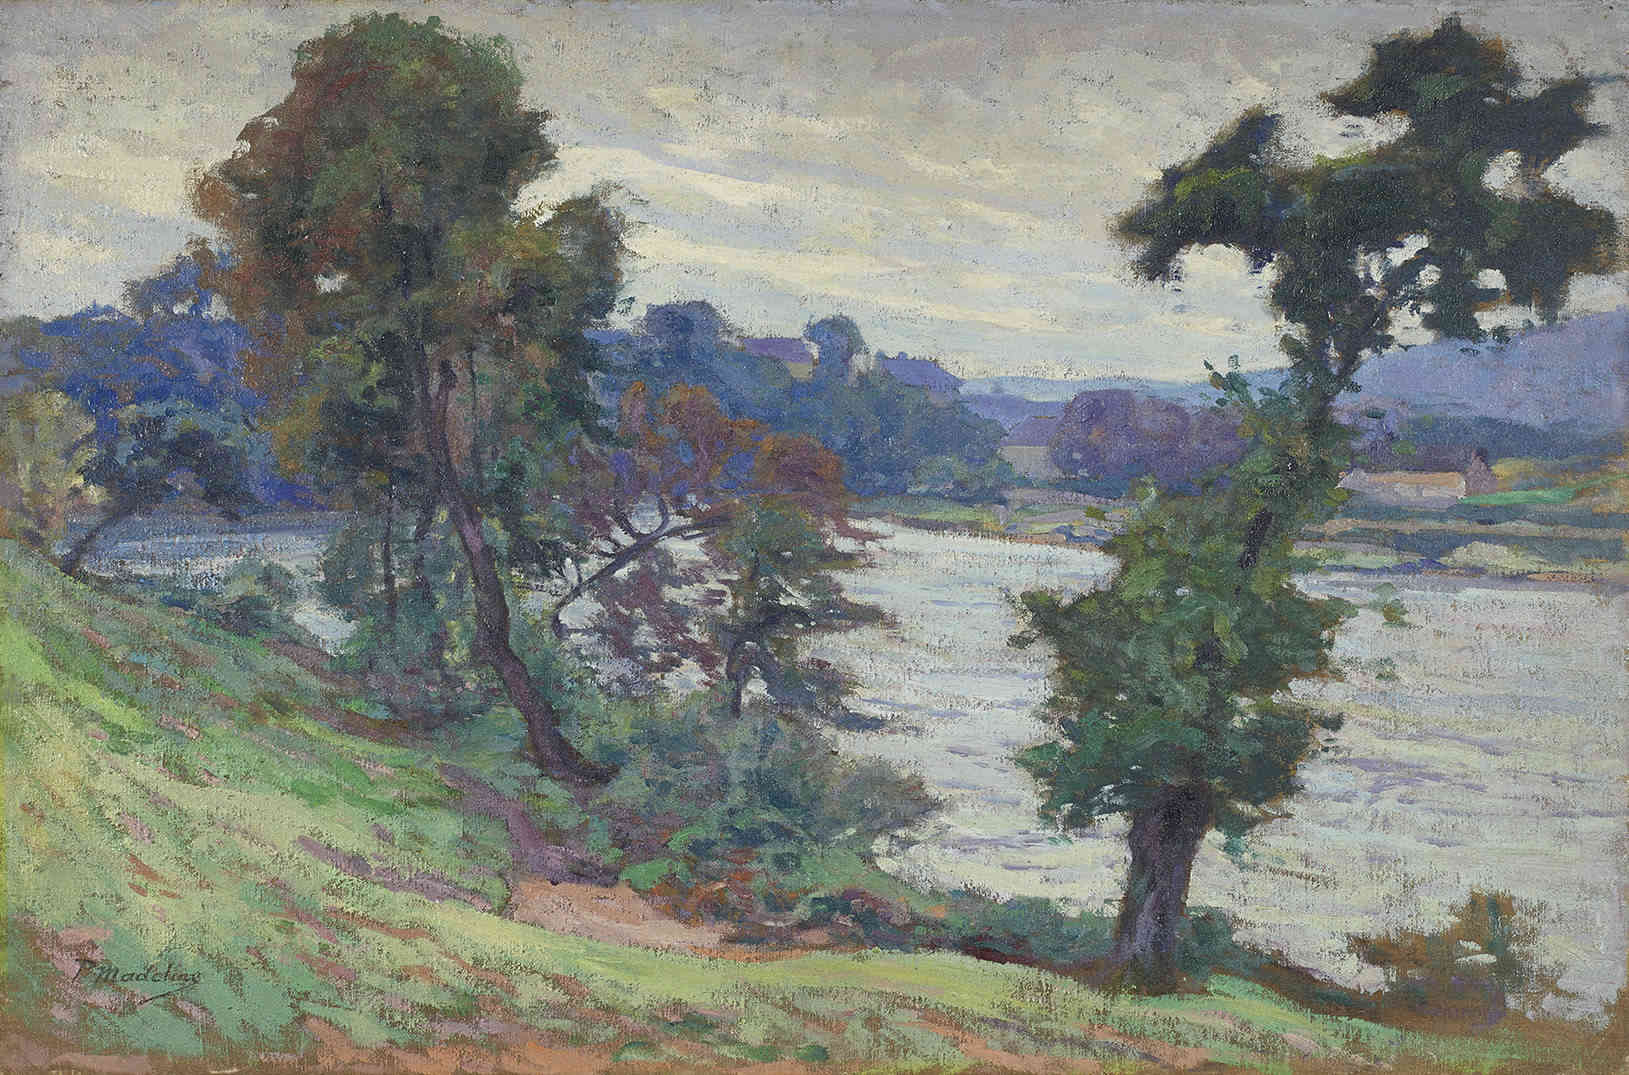 Bords de Dordogne, Largentat Paul Madeline - Kunsthandel Studio 2000